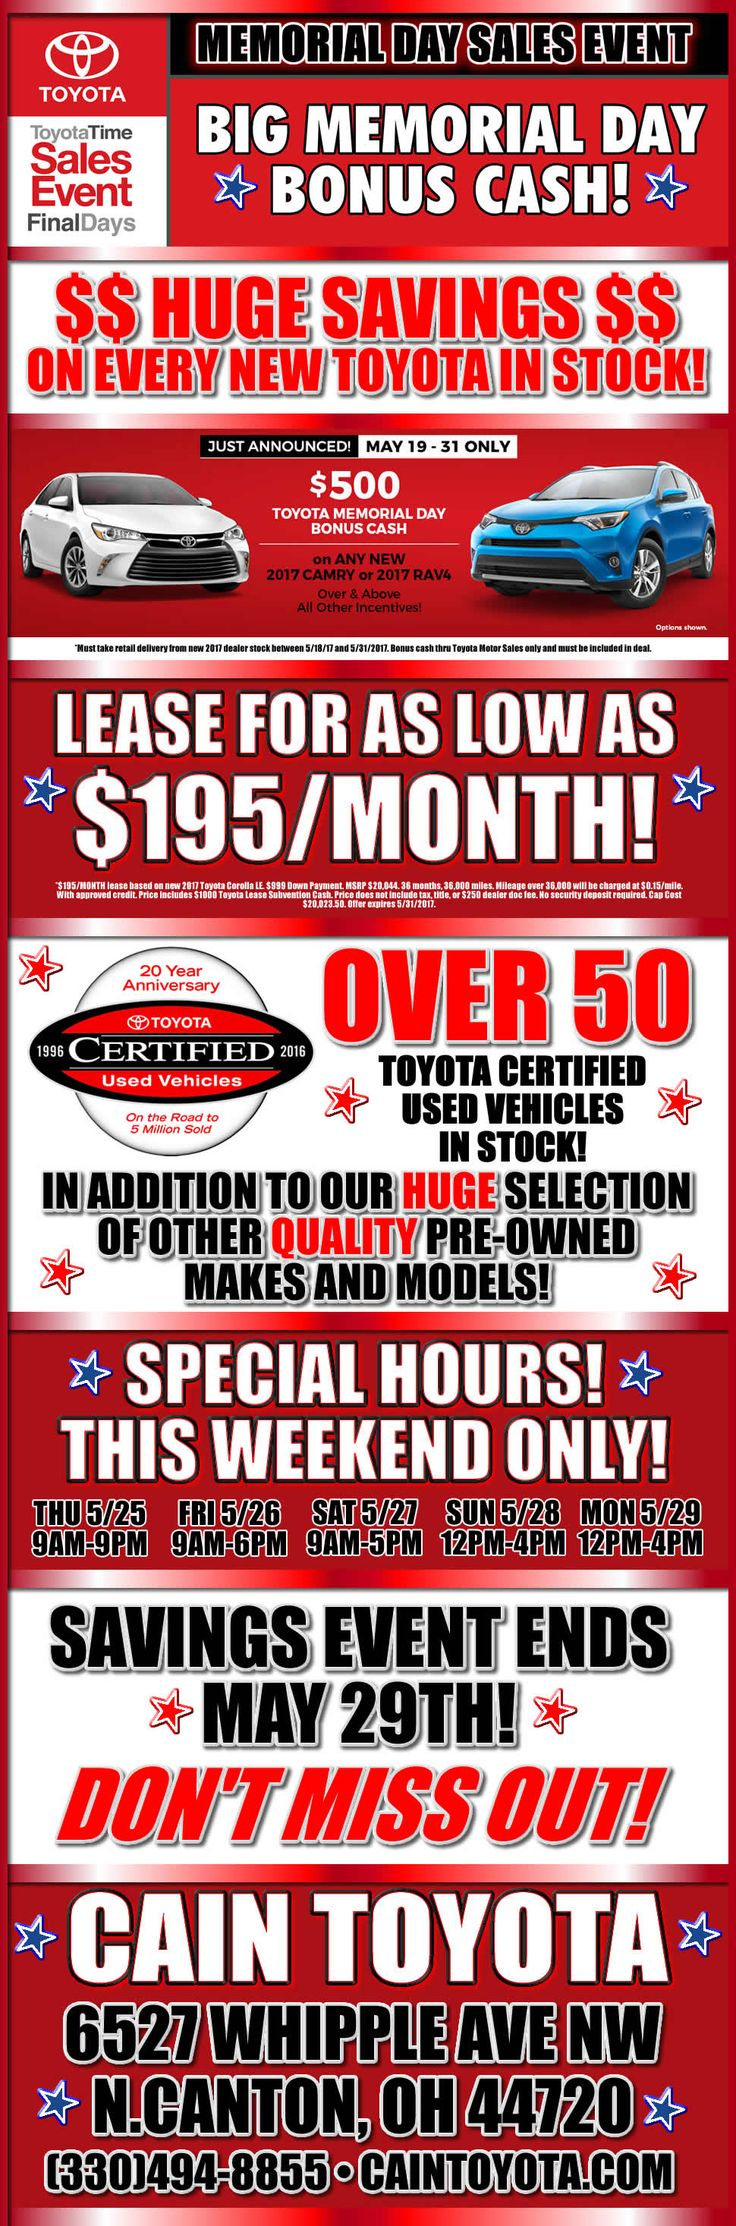 Our memorial weekend sales event is on now stop in and check out the deals